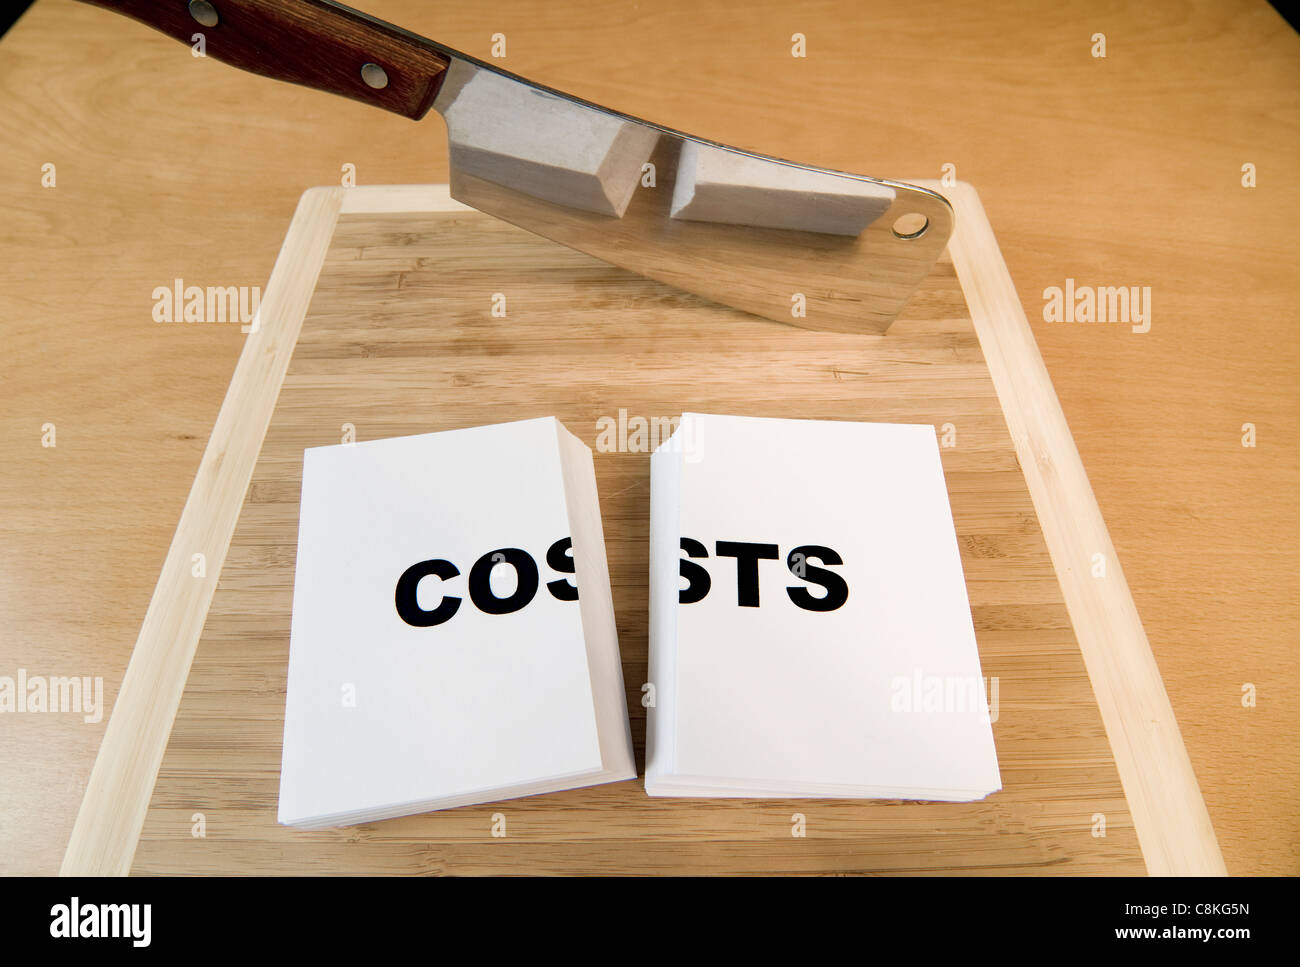 Cutting costs in business or personal finances with a cleaver. - Stock Image